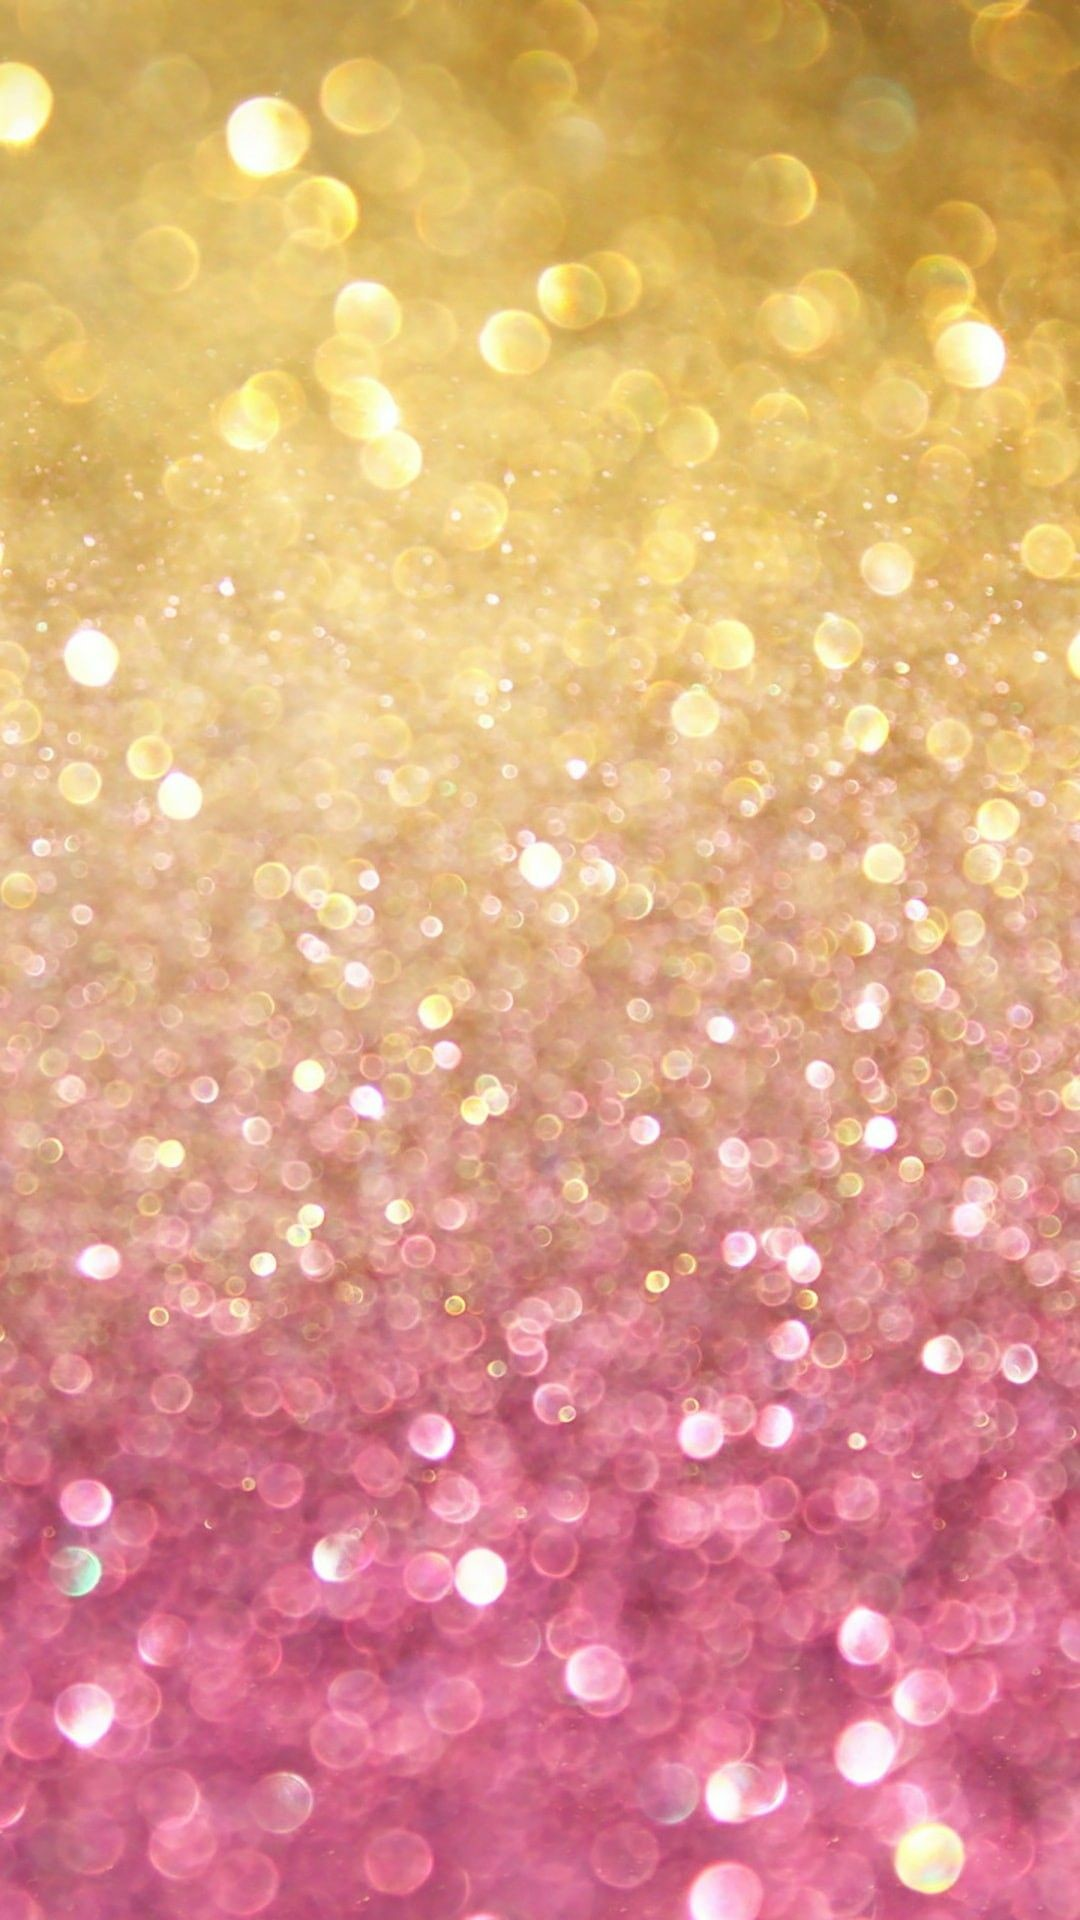 Sparkle Iphone Wallpapers Hd Wallpaper Collections 4kwallpaper